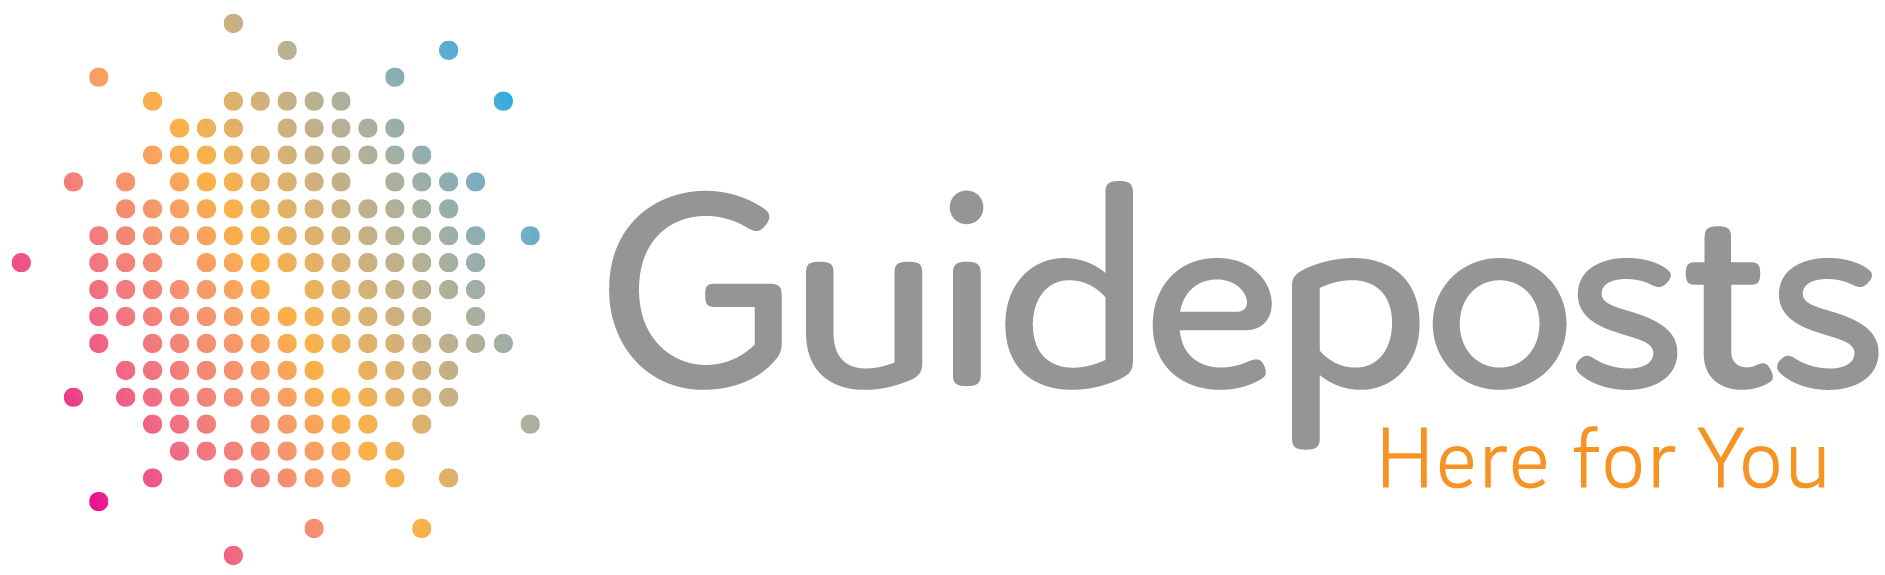 Guideposts Trust Demo